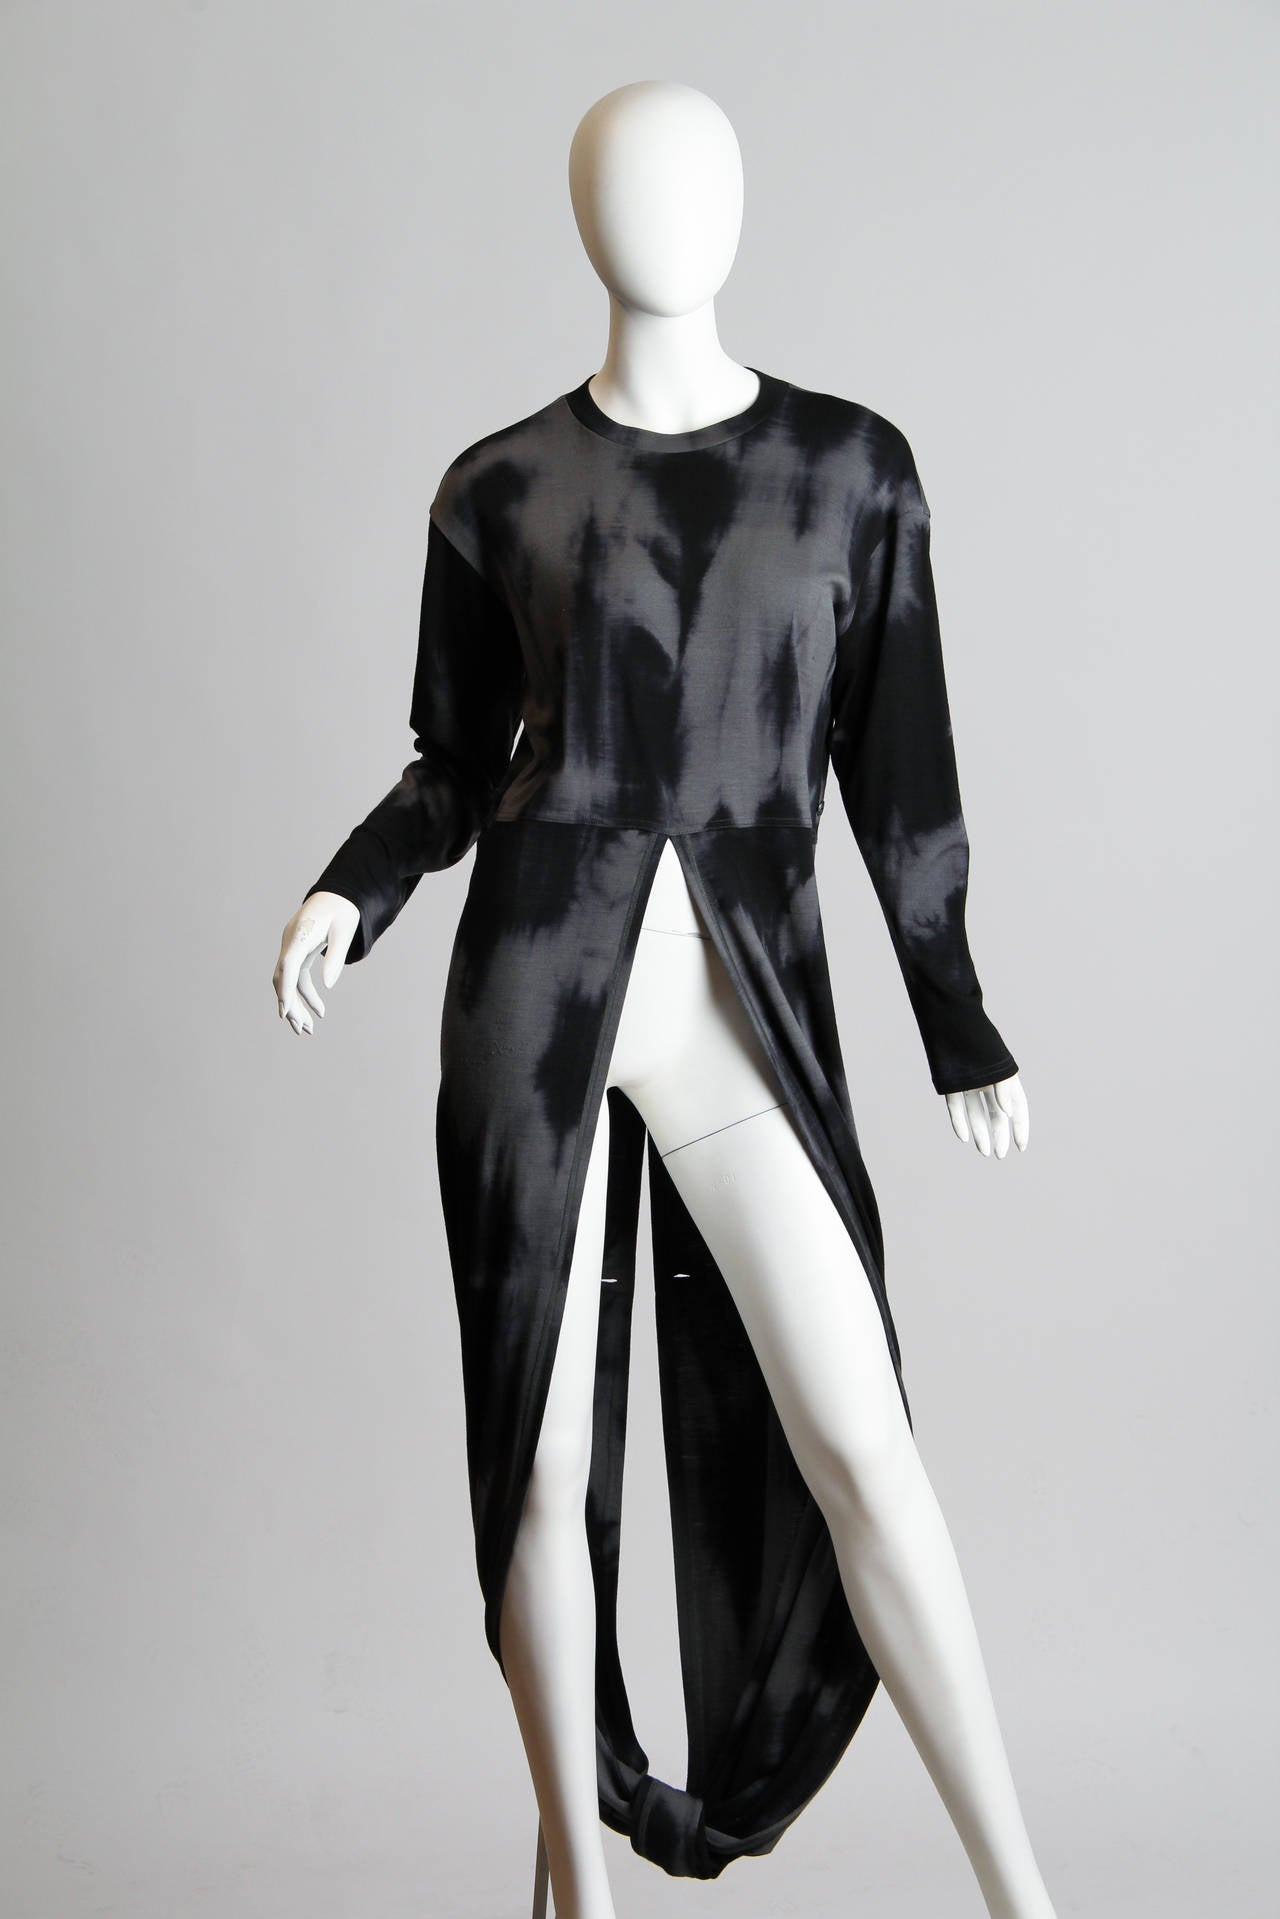 This striking garment by famed avant-garde designer Issey Miyake is a play on the 19th century tailcoat, updated for our modern times and changing world. The re-imagined garment evokes how much the world of fashion has changed since the age of men